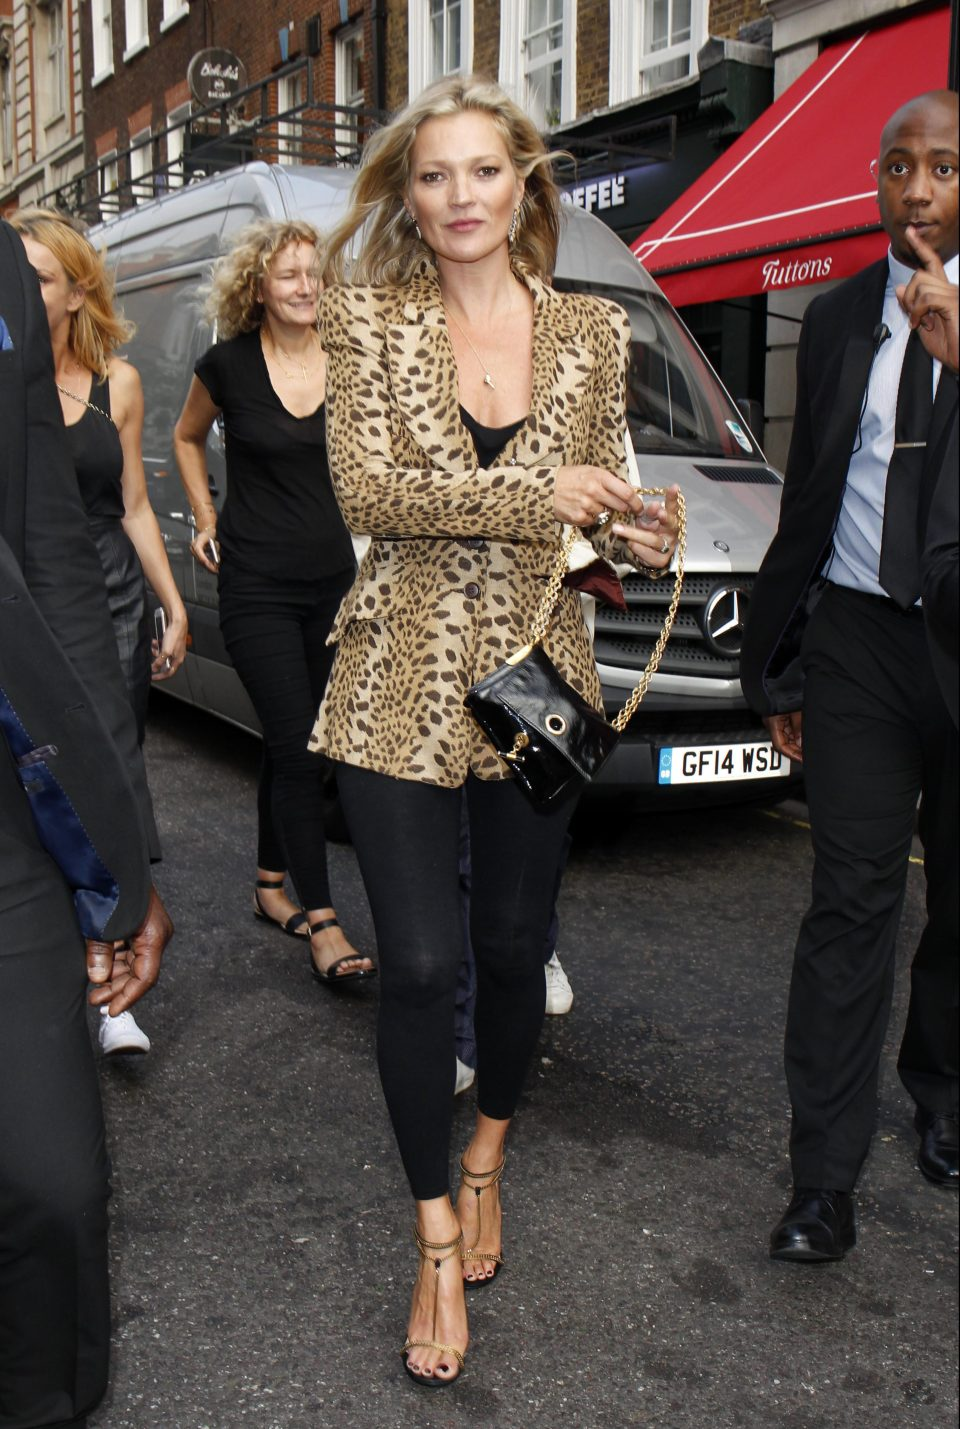 The actual Kate Moss, who people say Denise is the double of